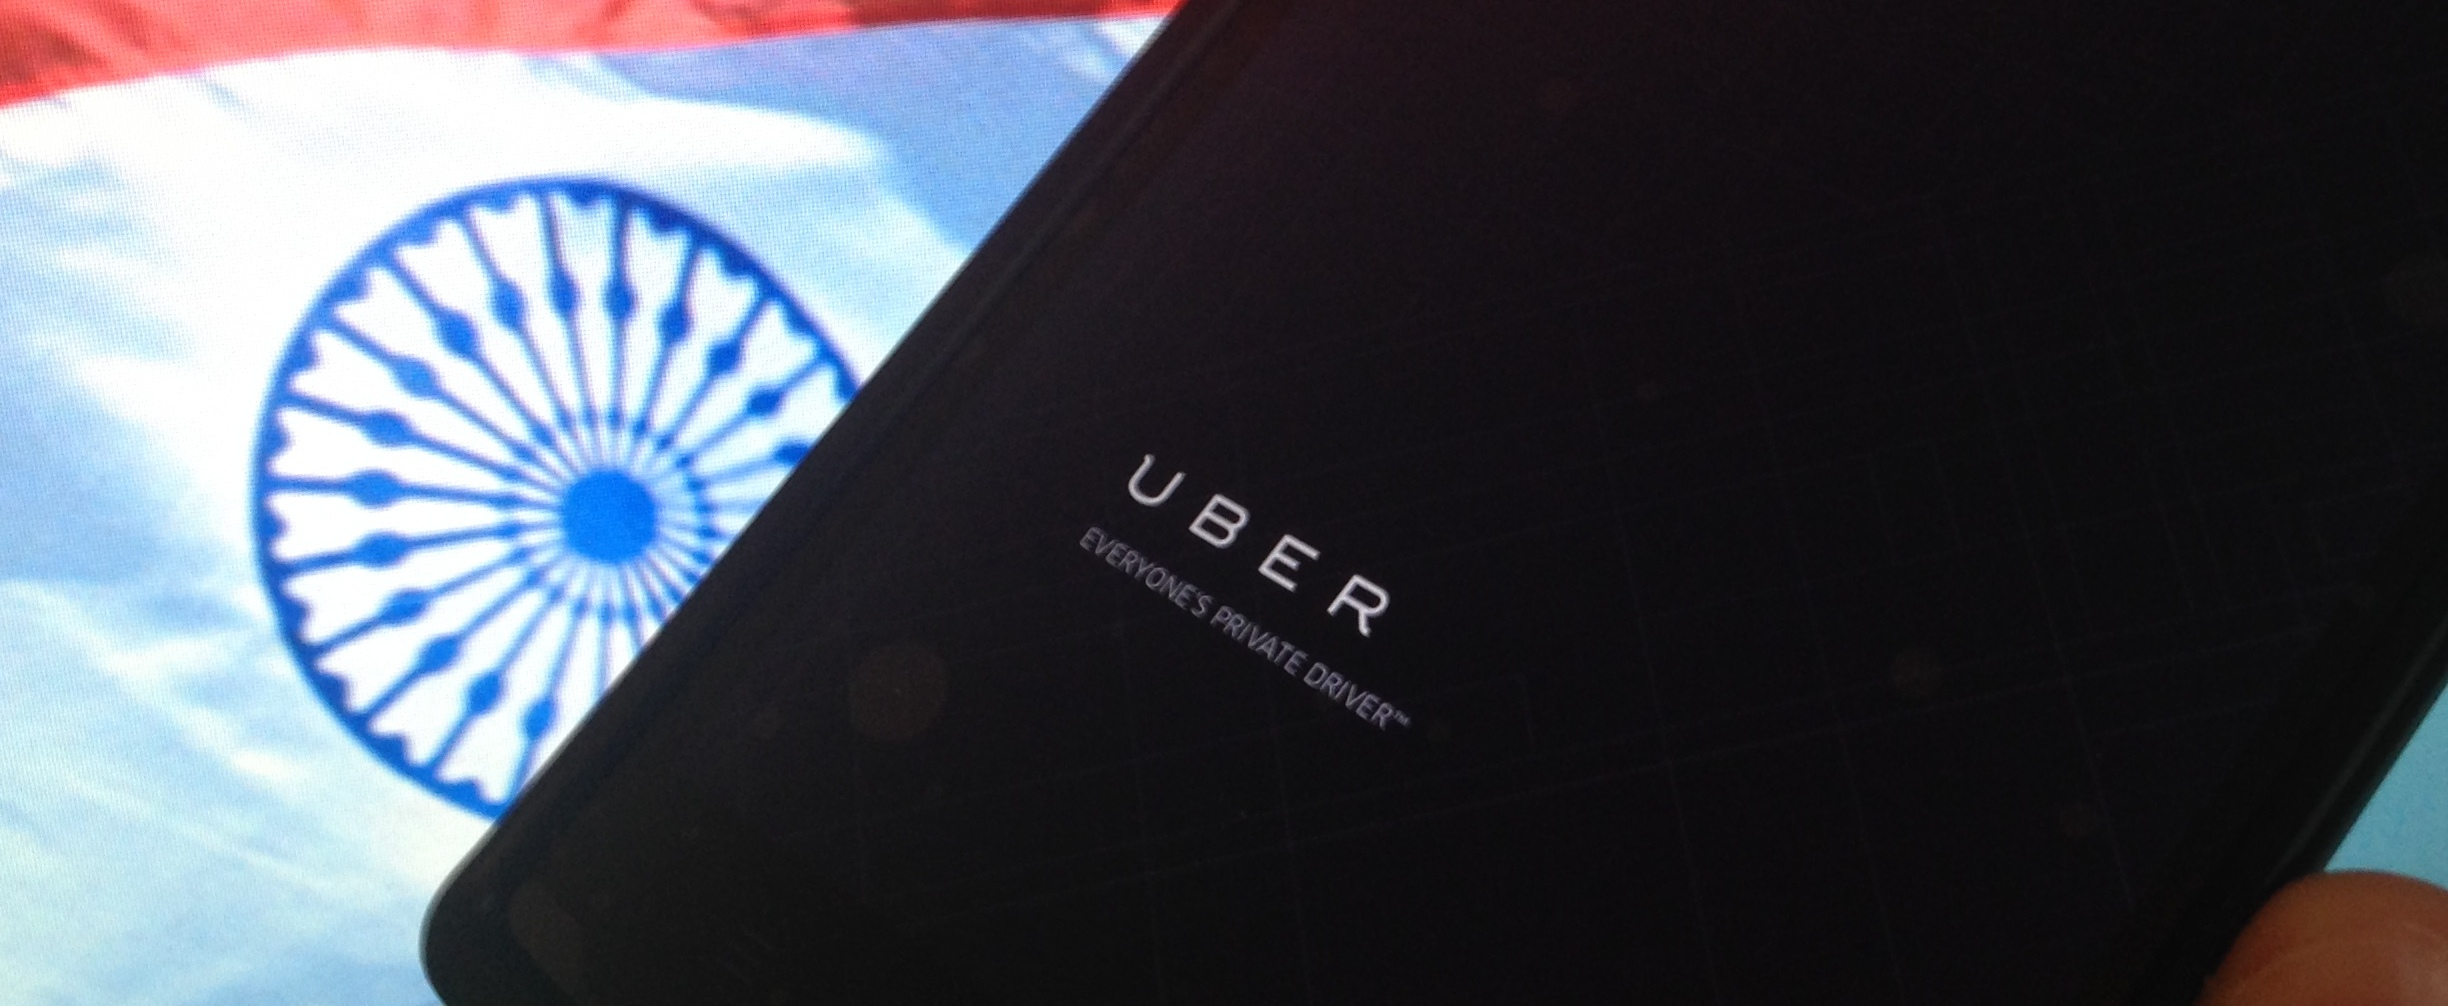 how to delete uber account on phone